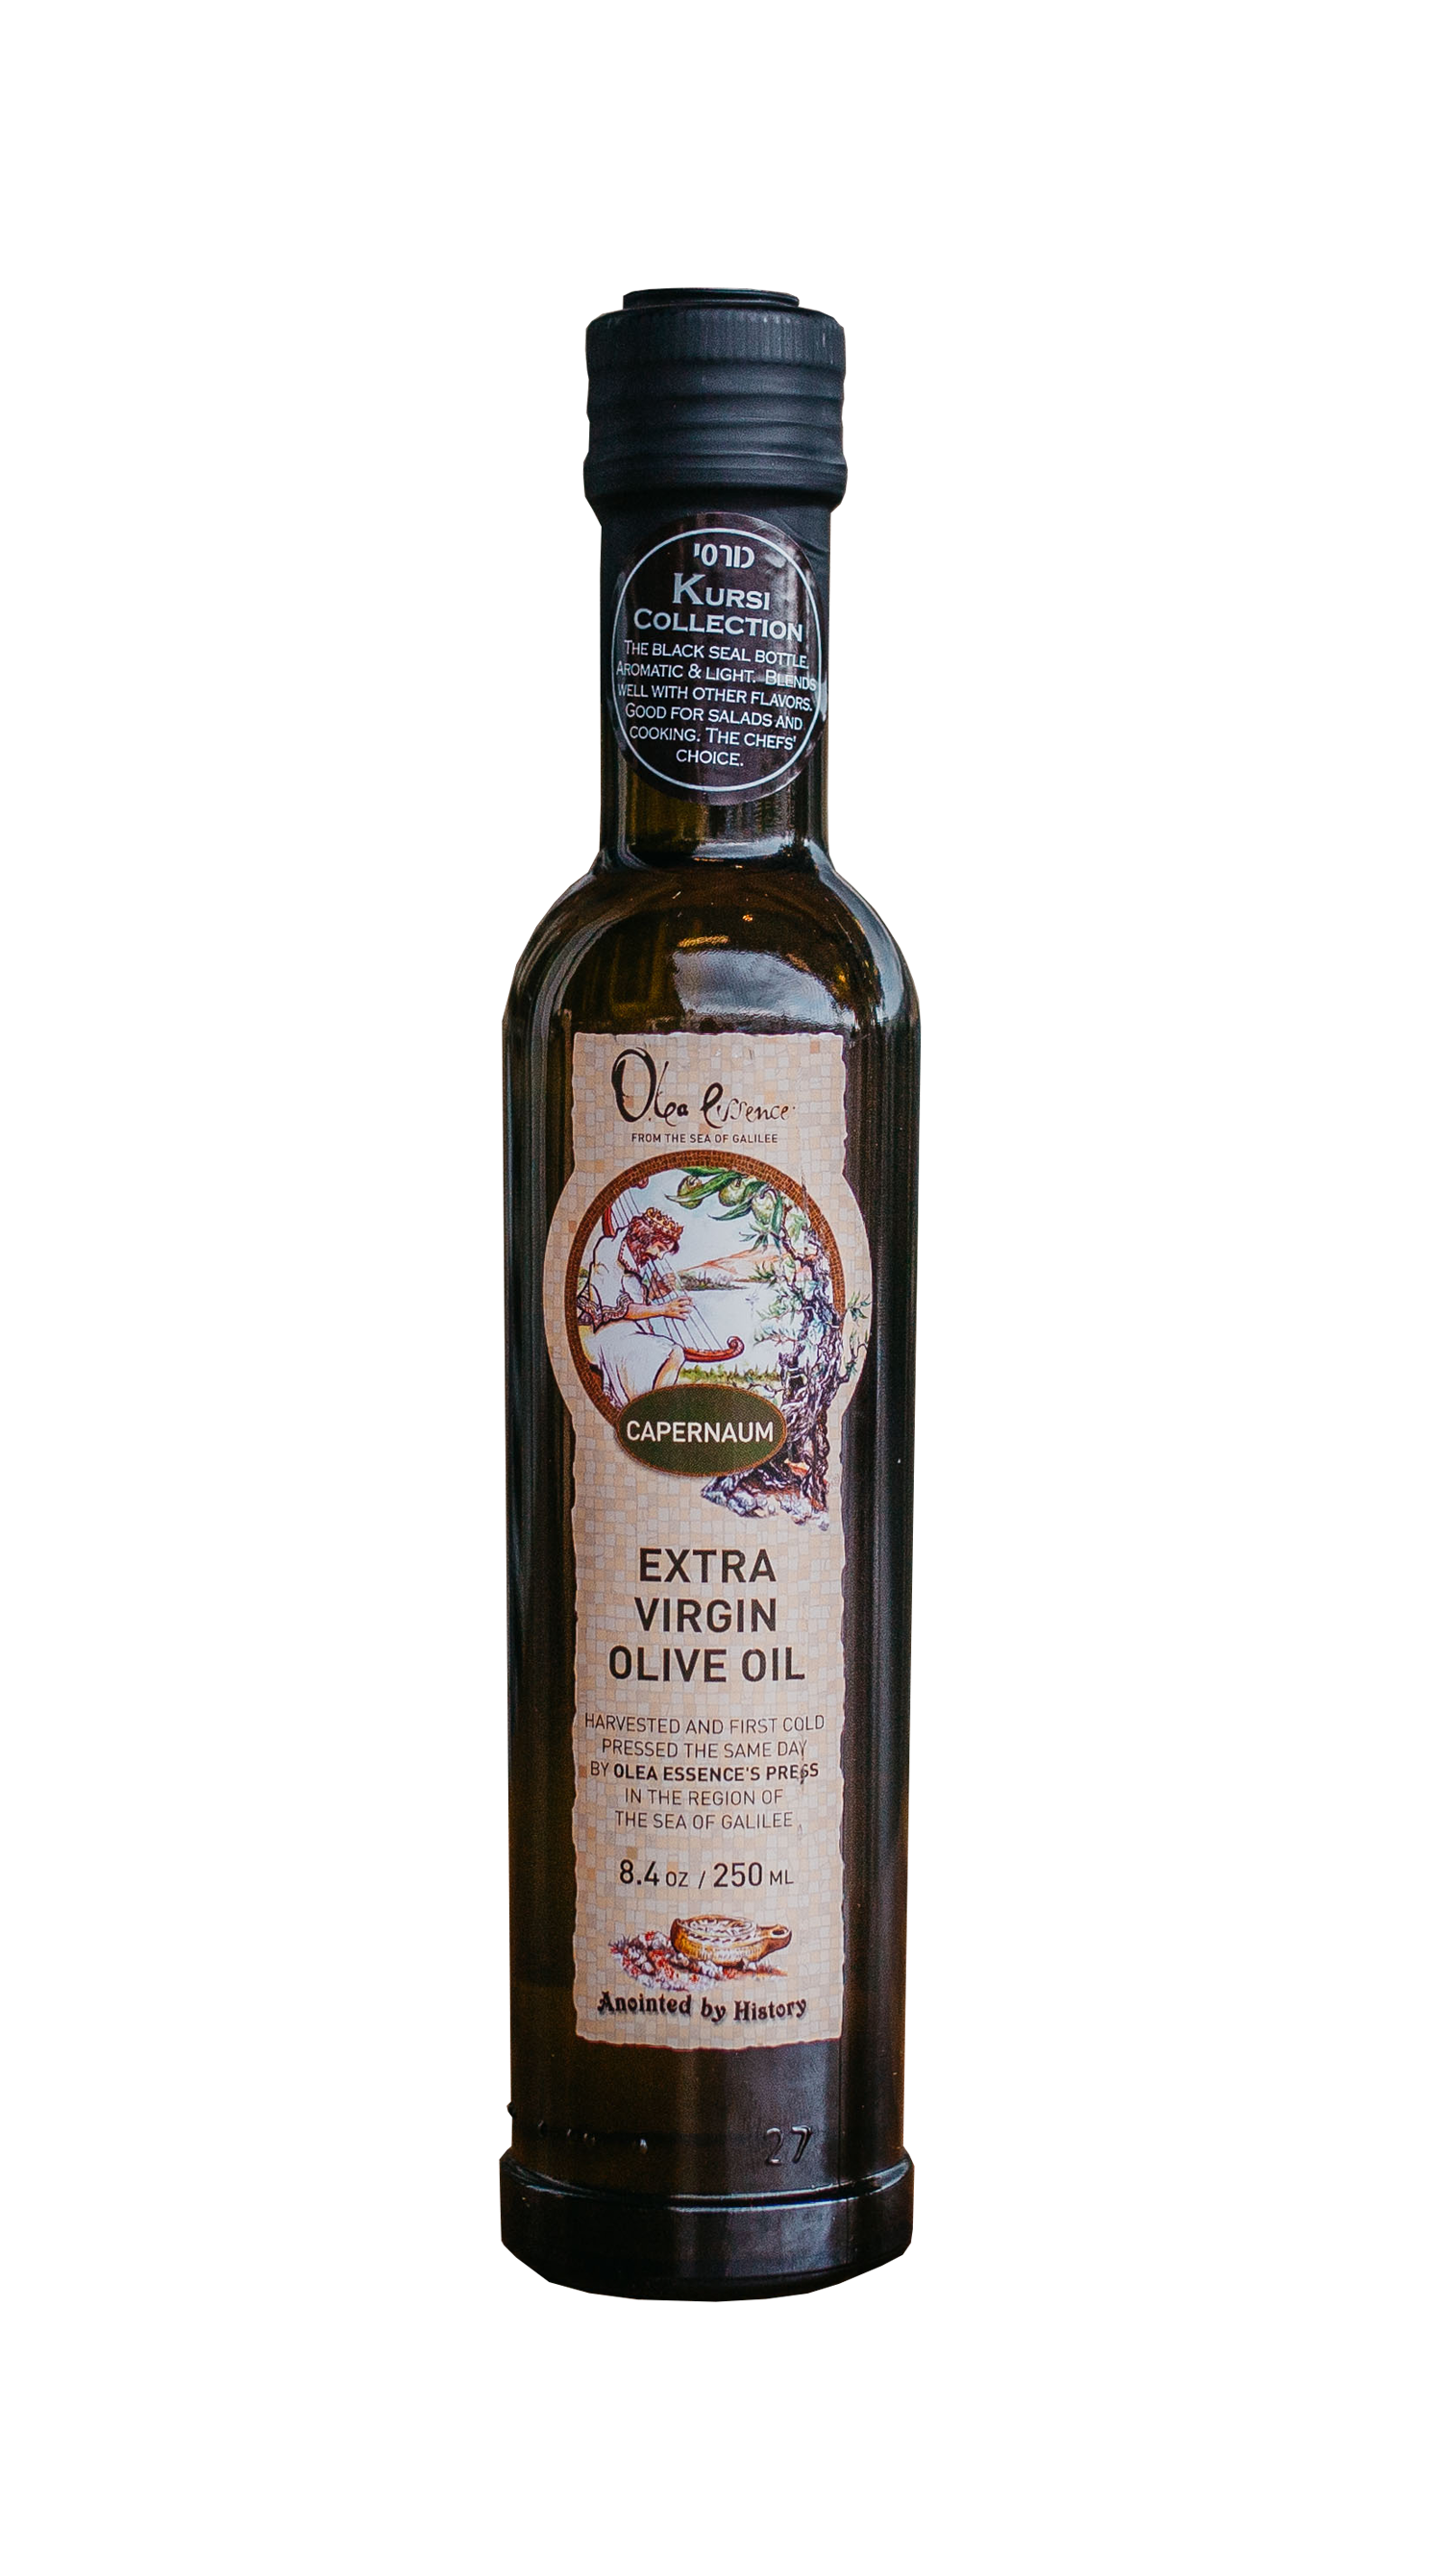 Extra Virgin Olive Oil - Kursi (Black Seal) 250ml